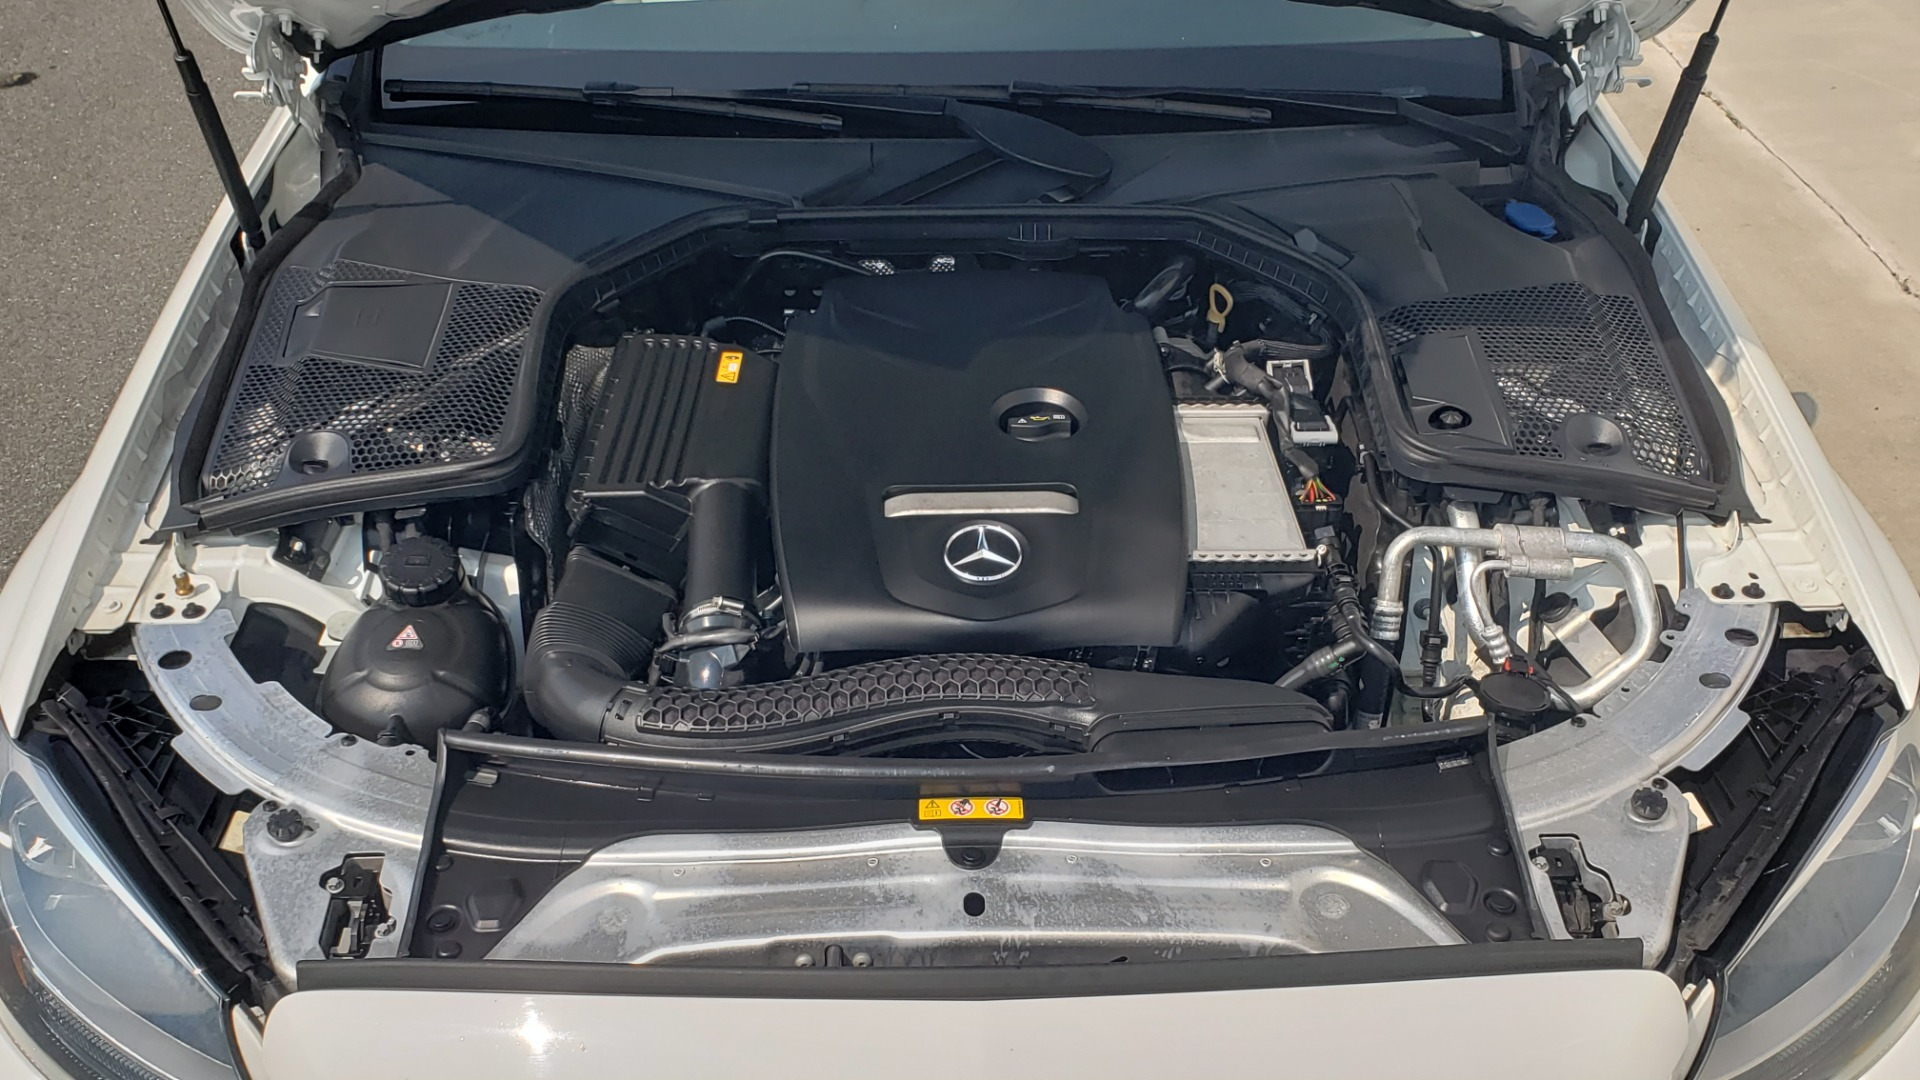 Used 2018 Mercedes-Benz C-CLASS C 300 PREMIUM / KEYLESS-GO / APPLE / PANO-ROOF / REARVIEW for sale $28,295 at Formula Imports in Charlotte NC 28227 14